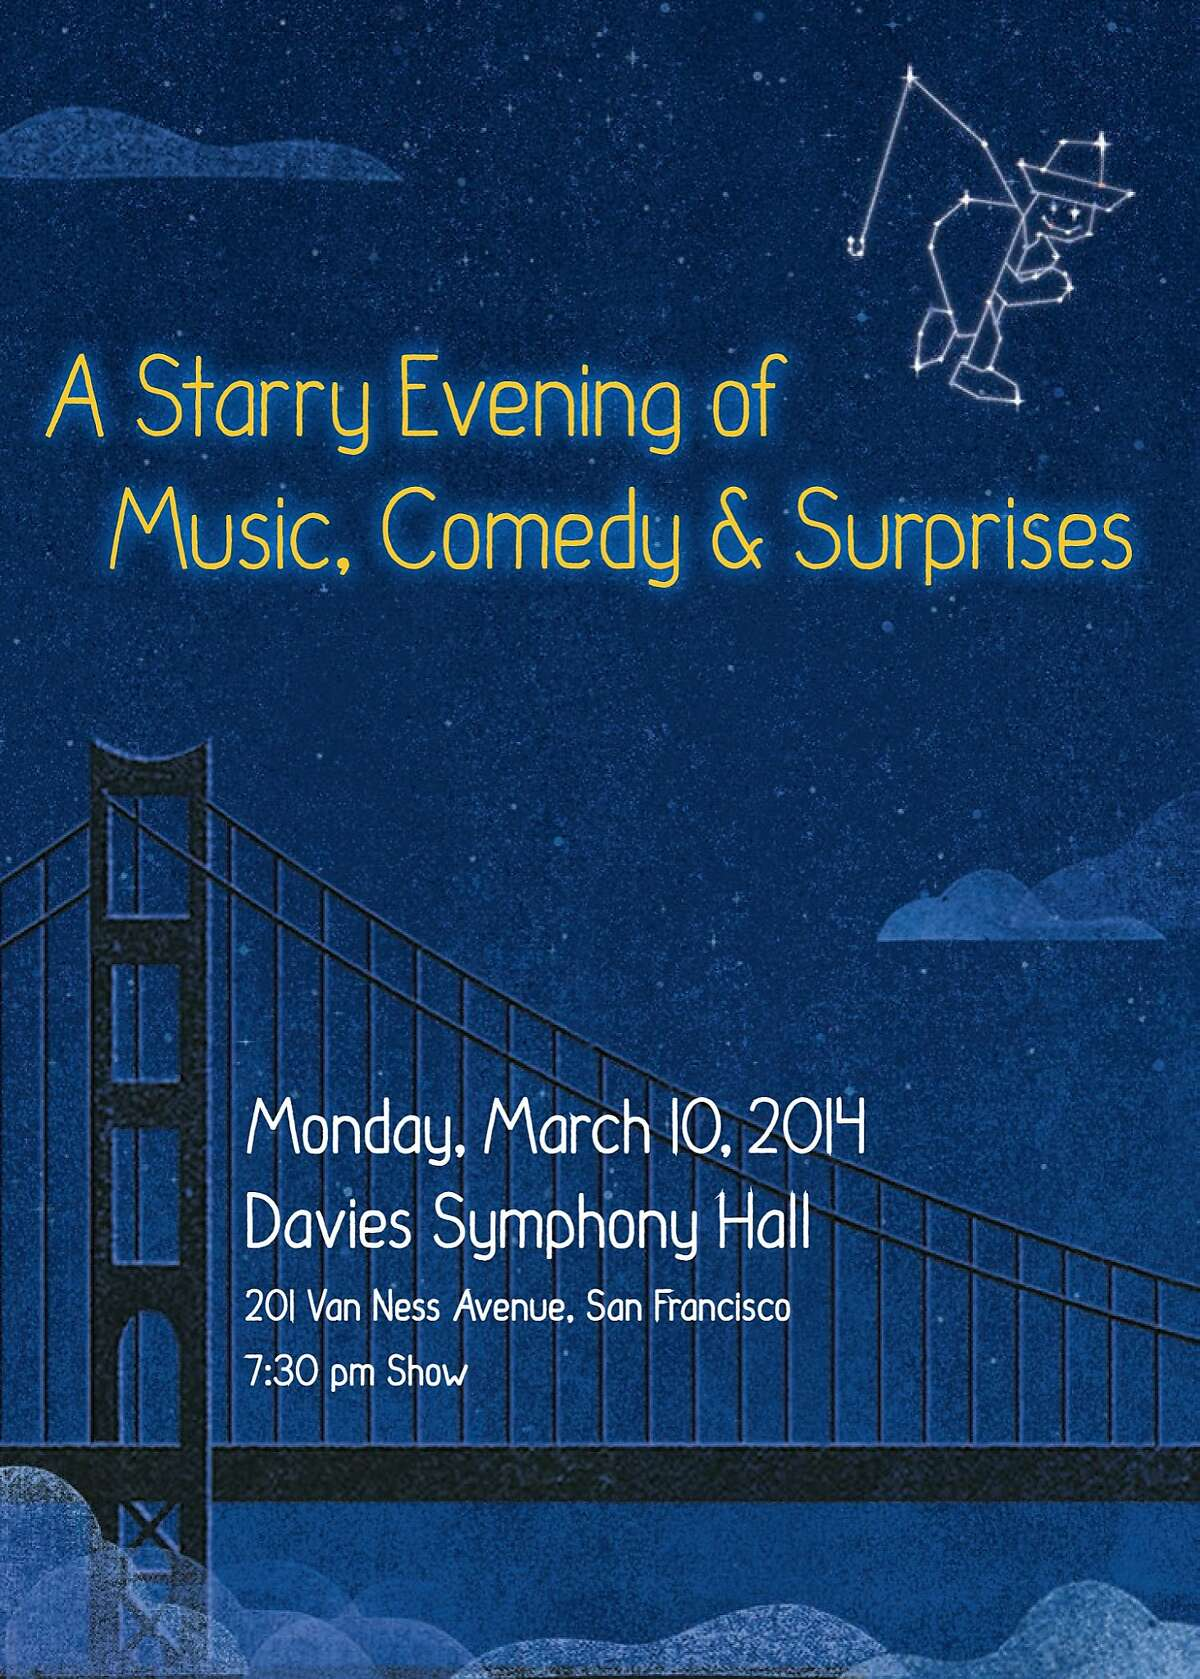 """?'A Starry Evening of Music, Comedy & Surprises?"""" takes place March 10 at Davies Symphony Hall and features Annette Bening, Danny DeVito, Josh Groban, Randy Newman, Jack Nicholson, Bonnie Raitt and RenŽe Zellweger."""